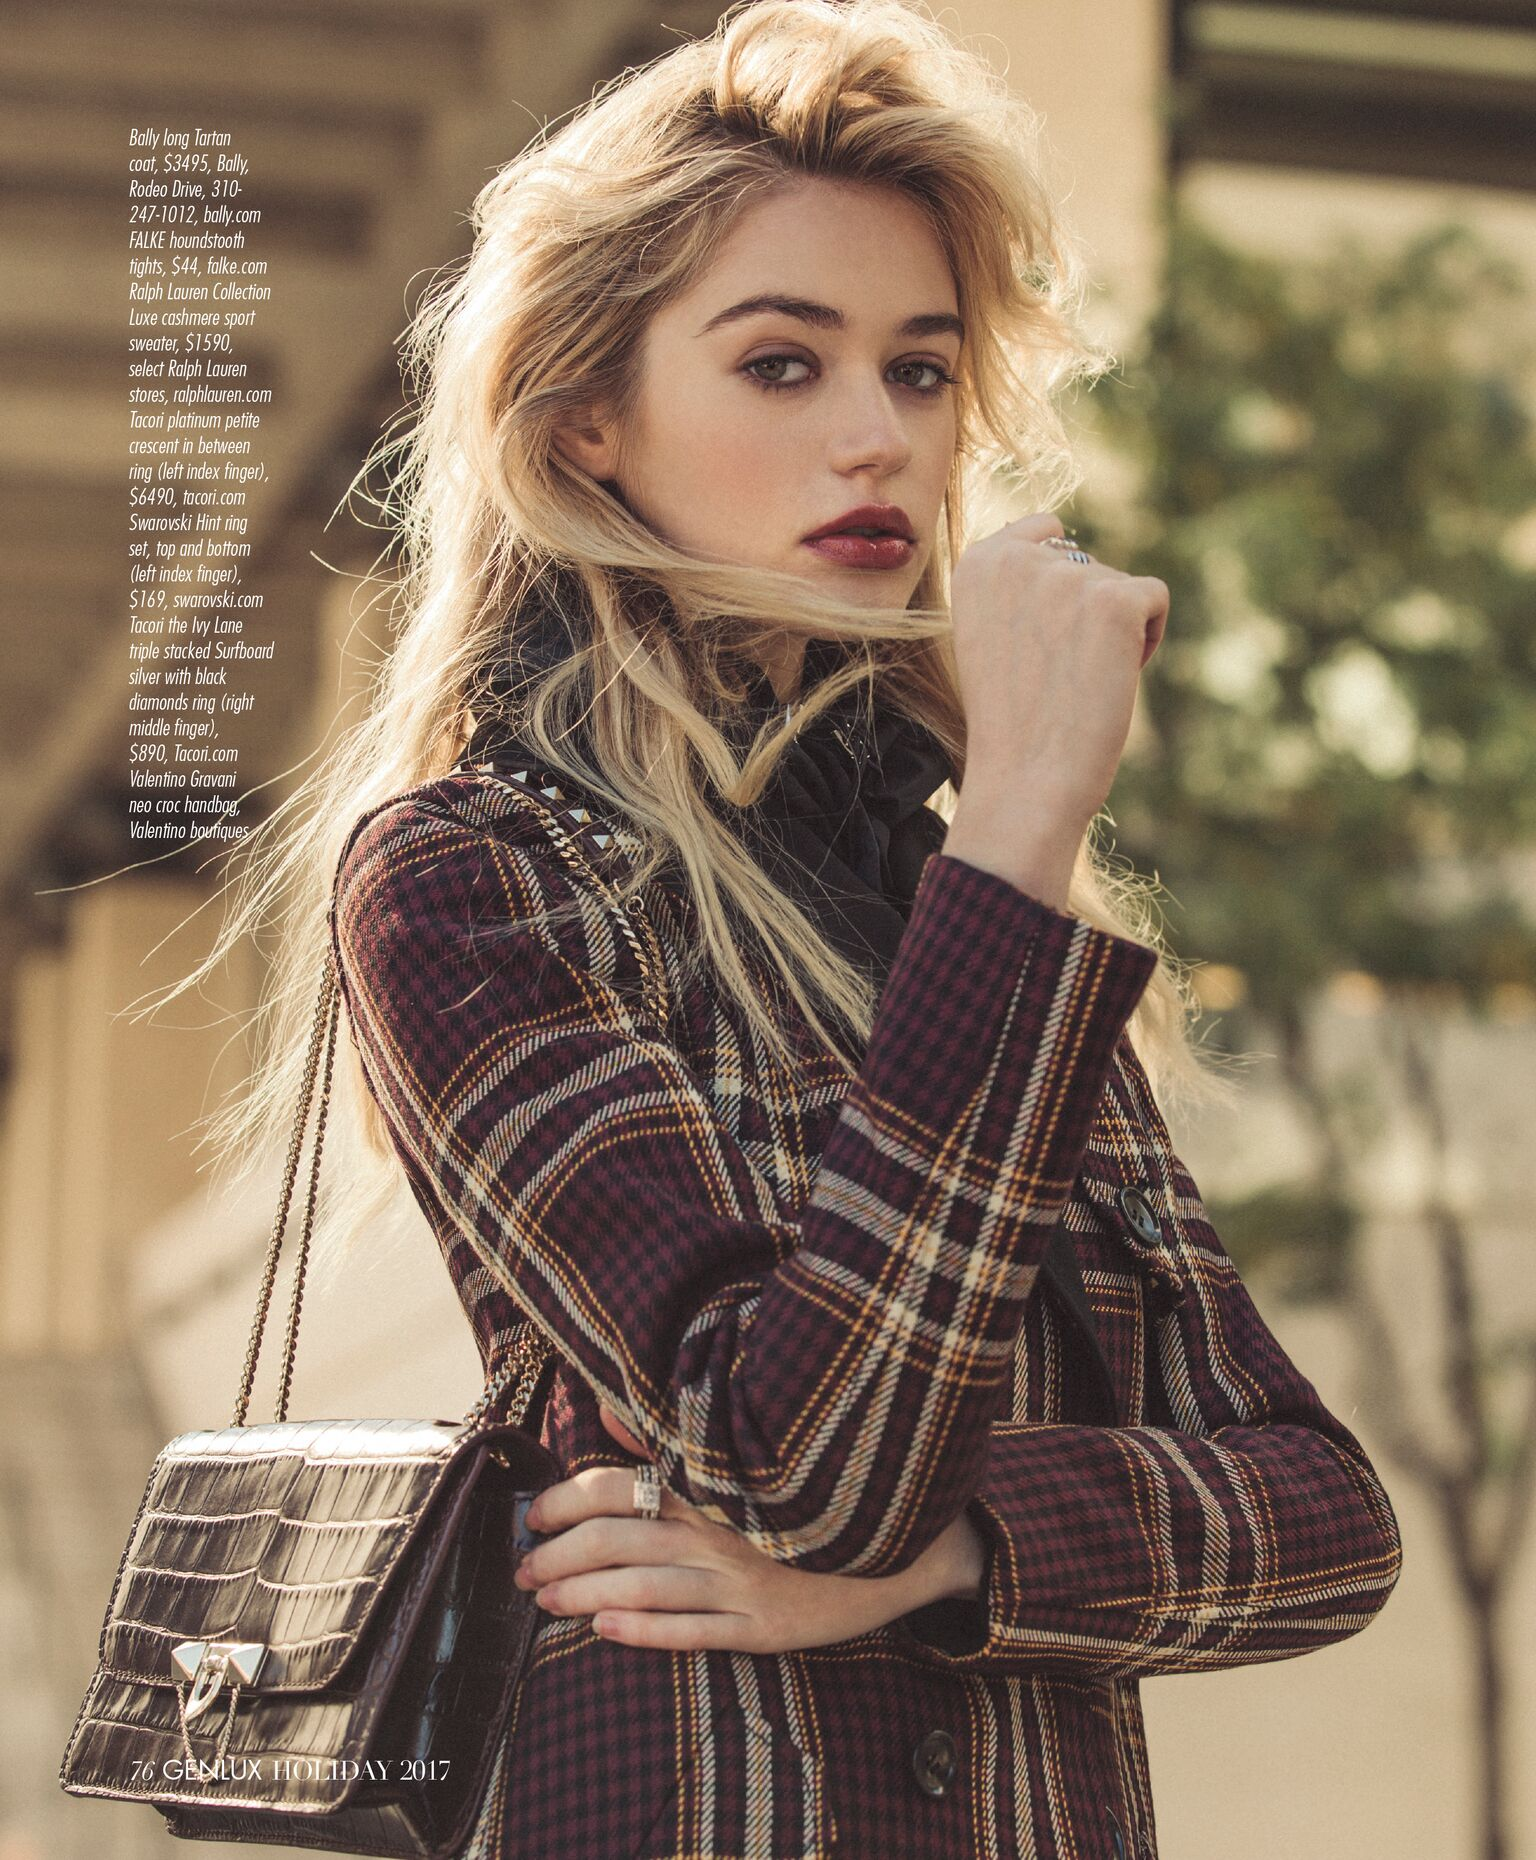 holly_parker_editorial_6_preview.jpg